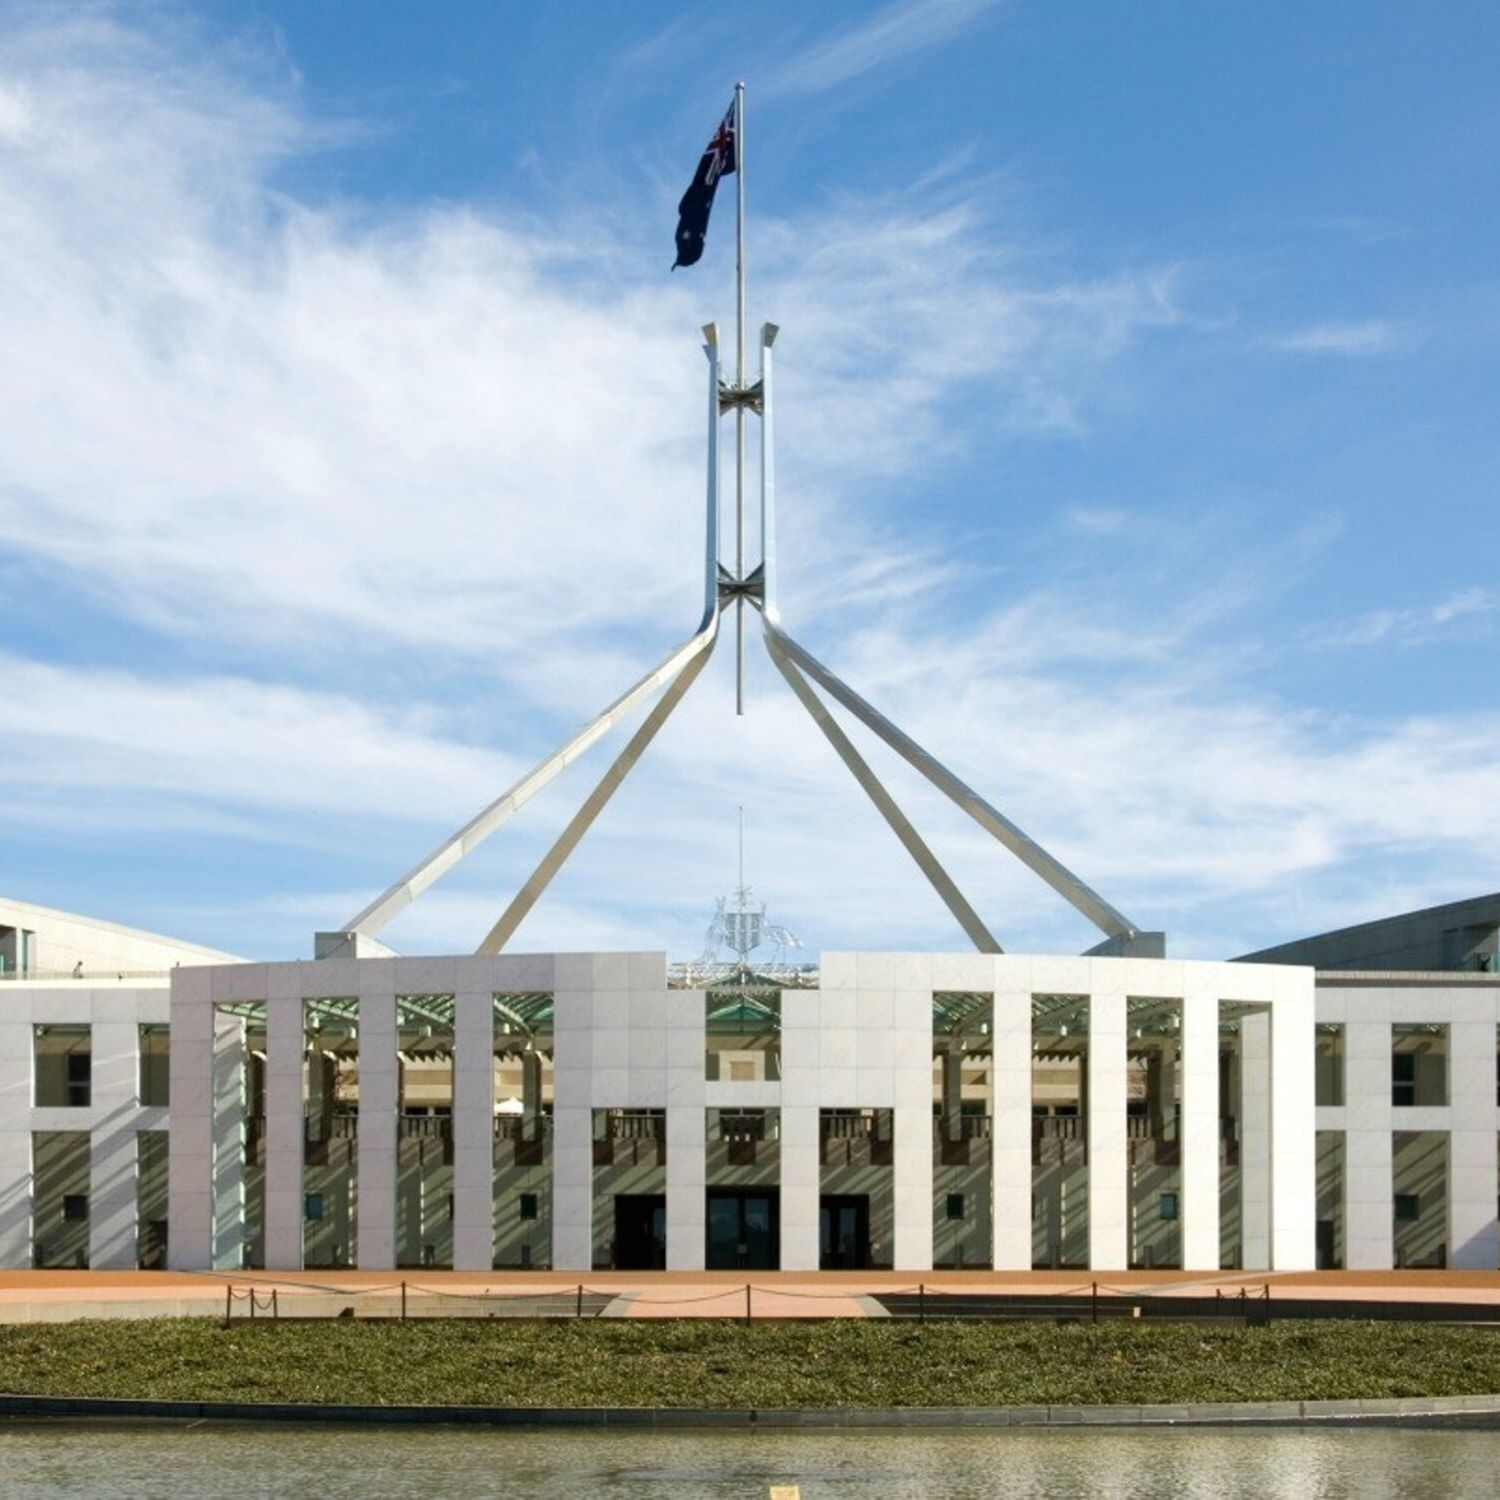 canberra short term holiday accommodation hotel motel budget ACT parliament house australia